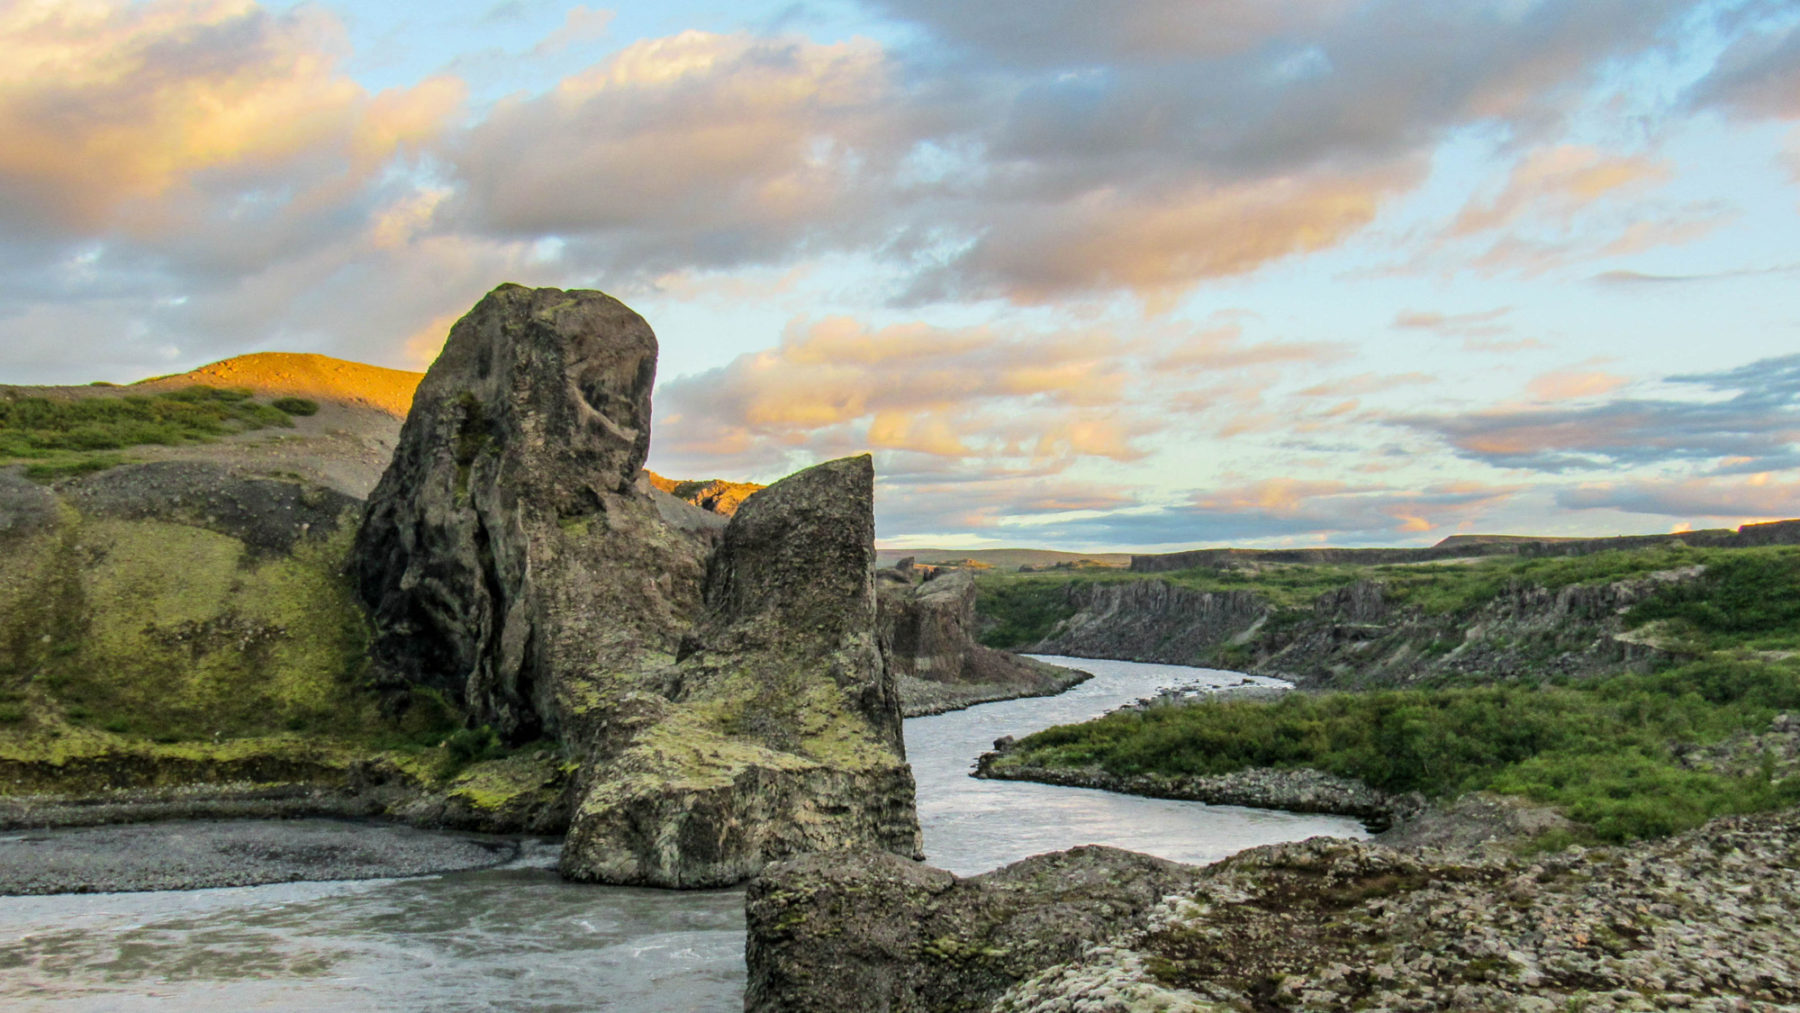 Luxury holidays and tours to Iceland